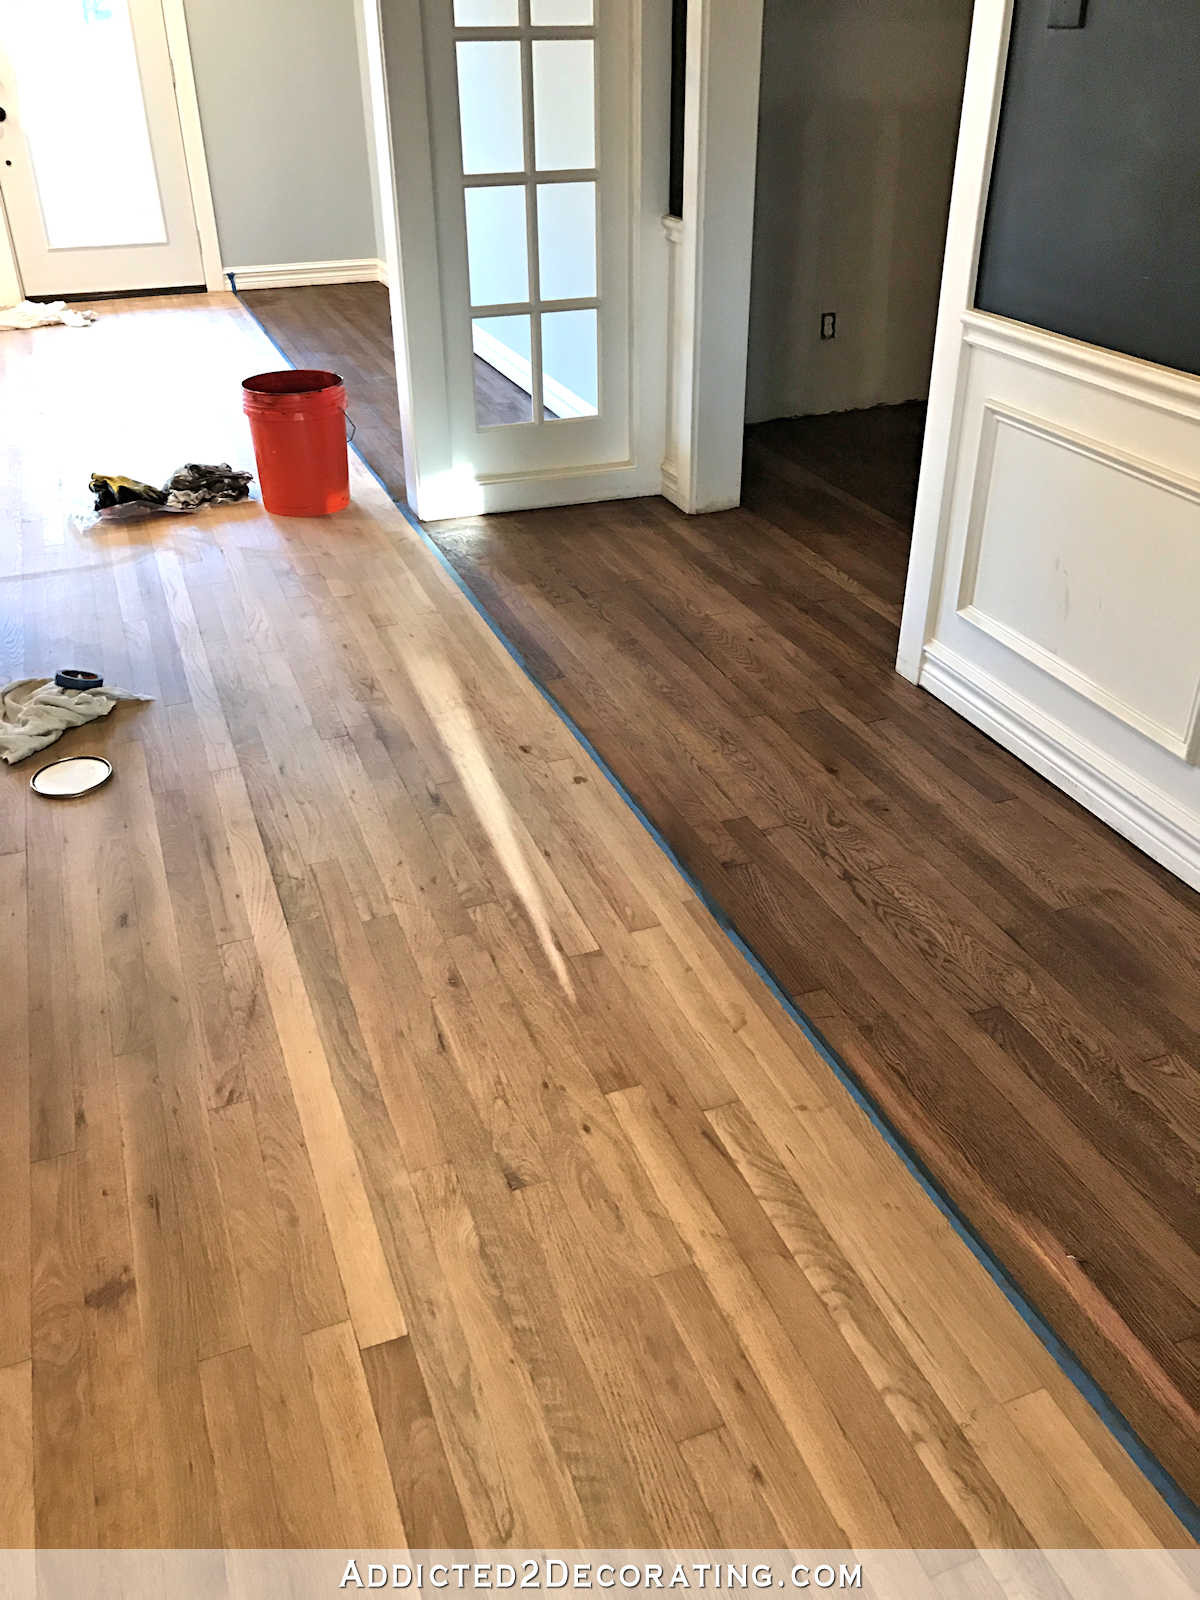 home depot unfinished red oak hardwood flooring of adventures in staining my red oak hardwood floors products process within staining red oak hardwood floors 6 stain on partial floor in entryway and music